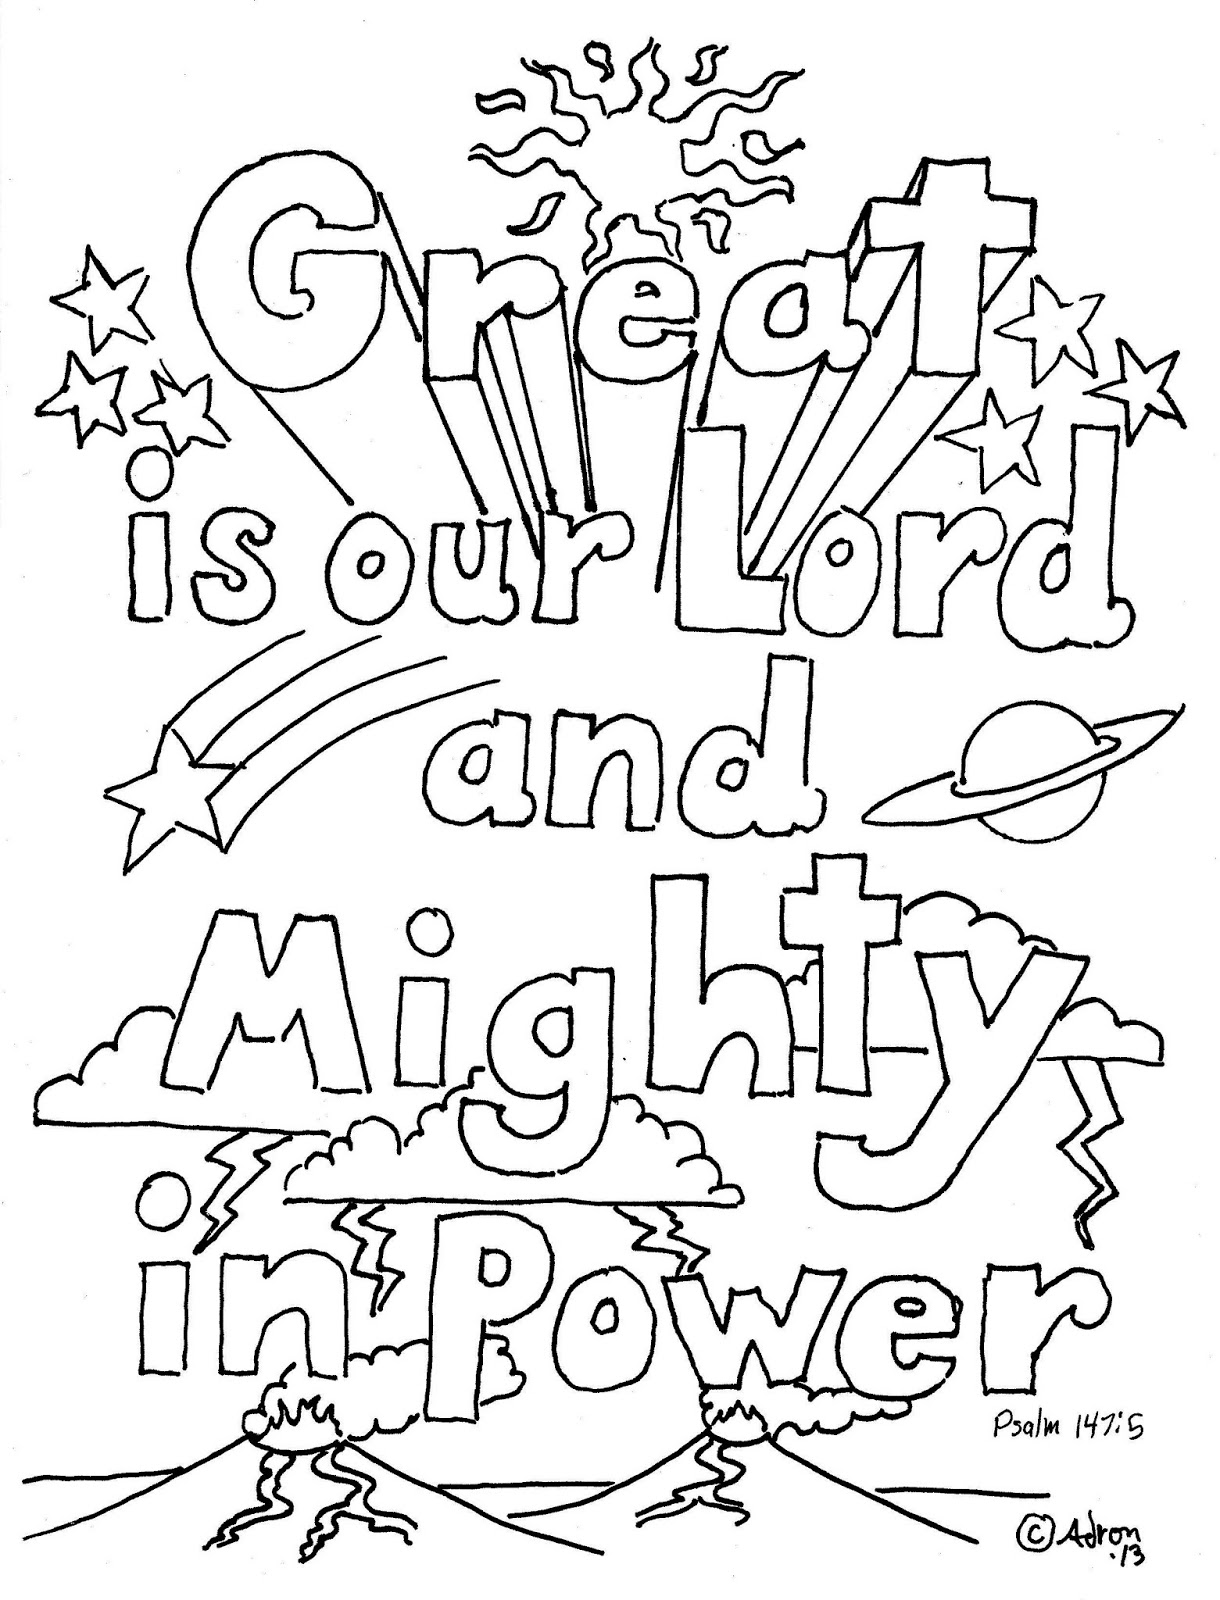 gods power coloring page great is our lord and mighty in power coloring sheet coloring page gods power